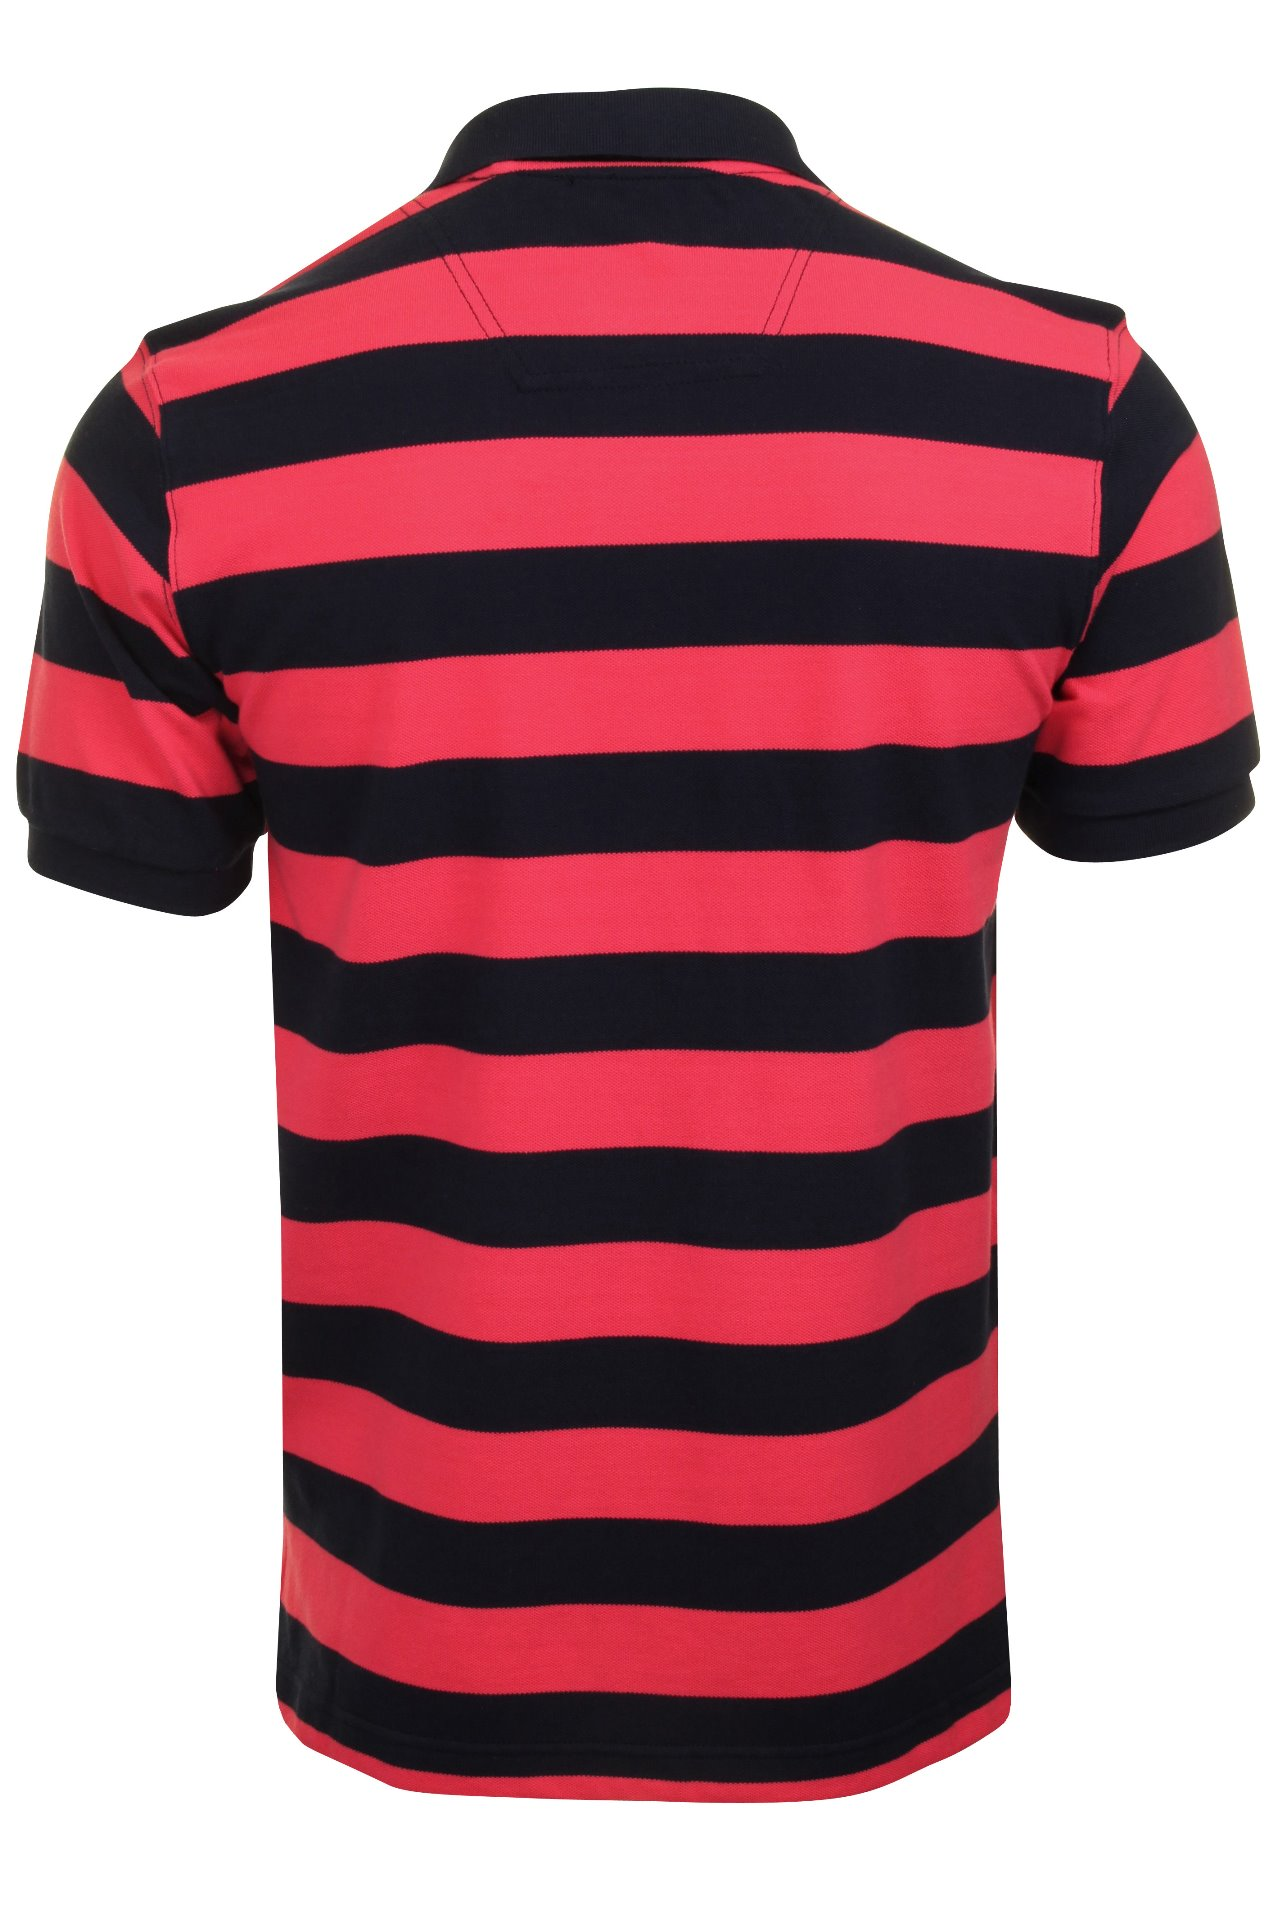 Joules Mens Striped Polo T-Shirt /'Filbert/' Short Sleeved